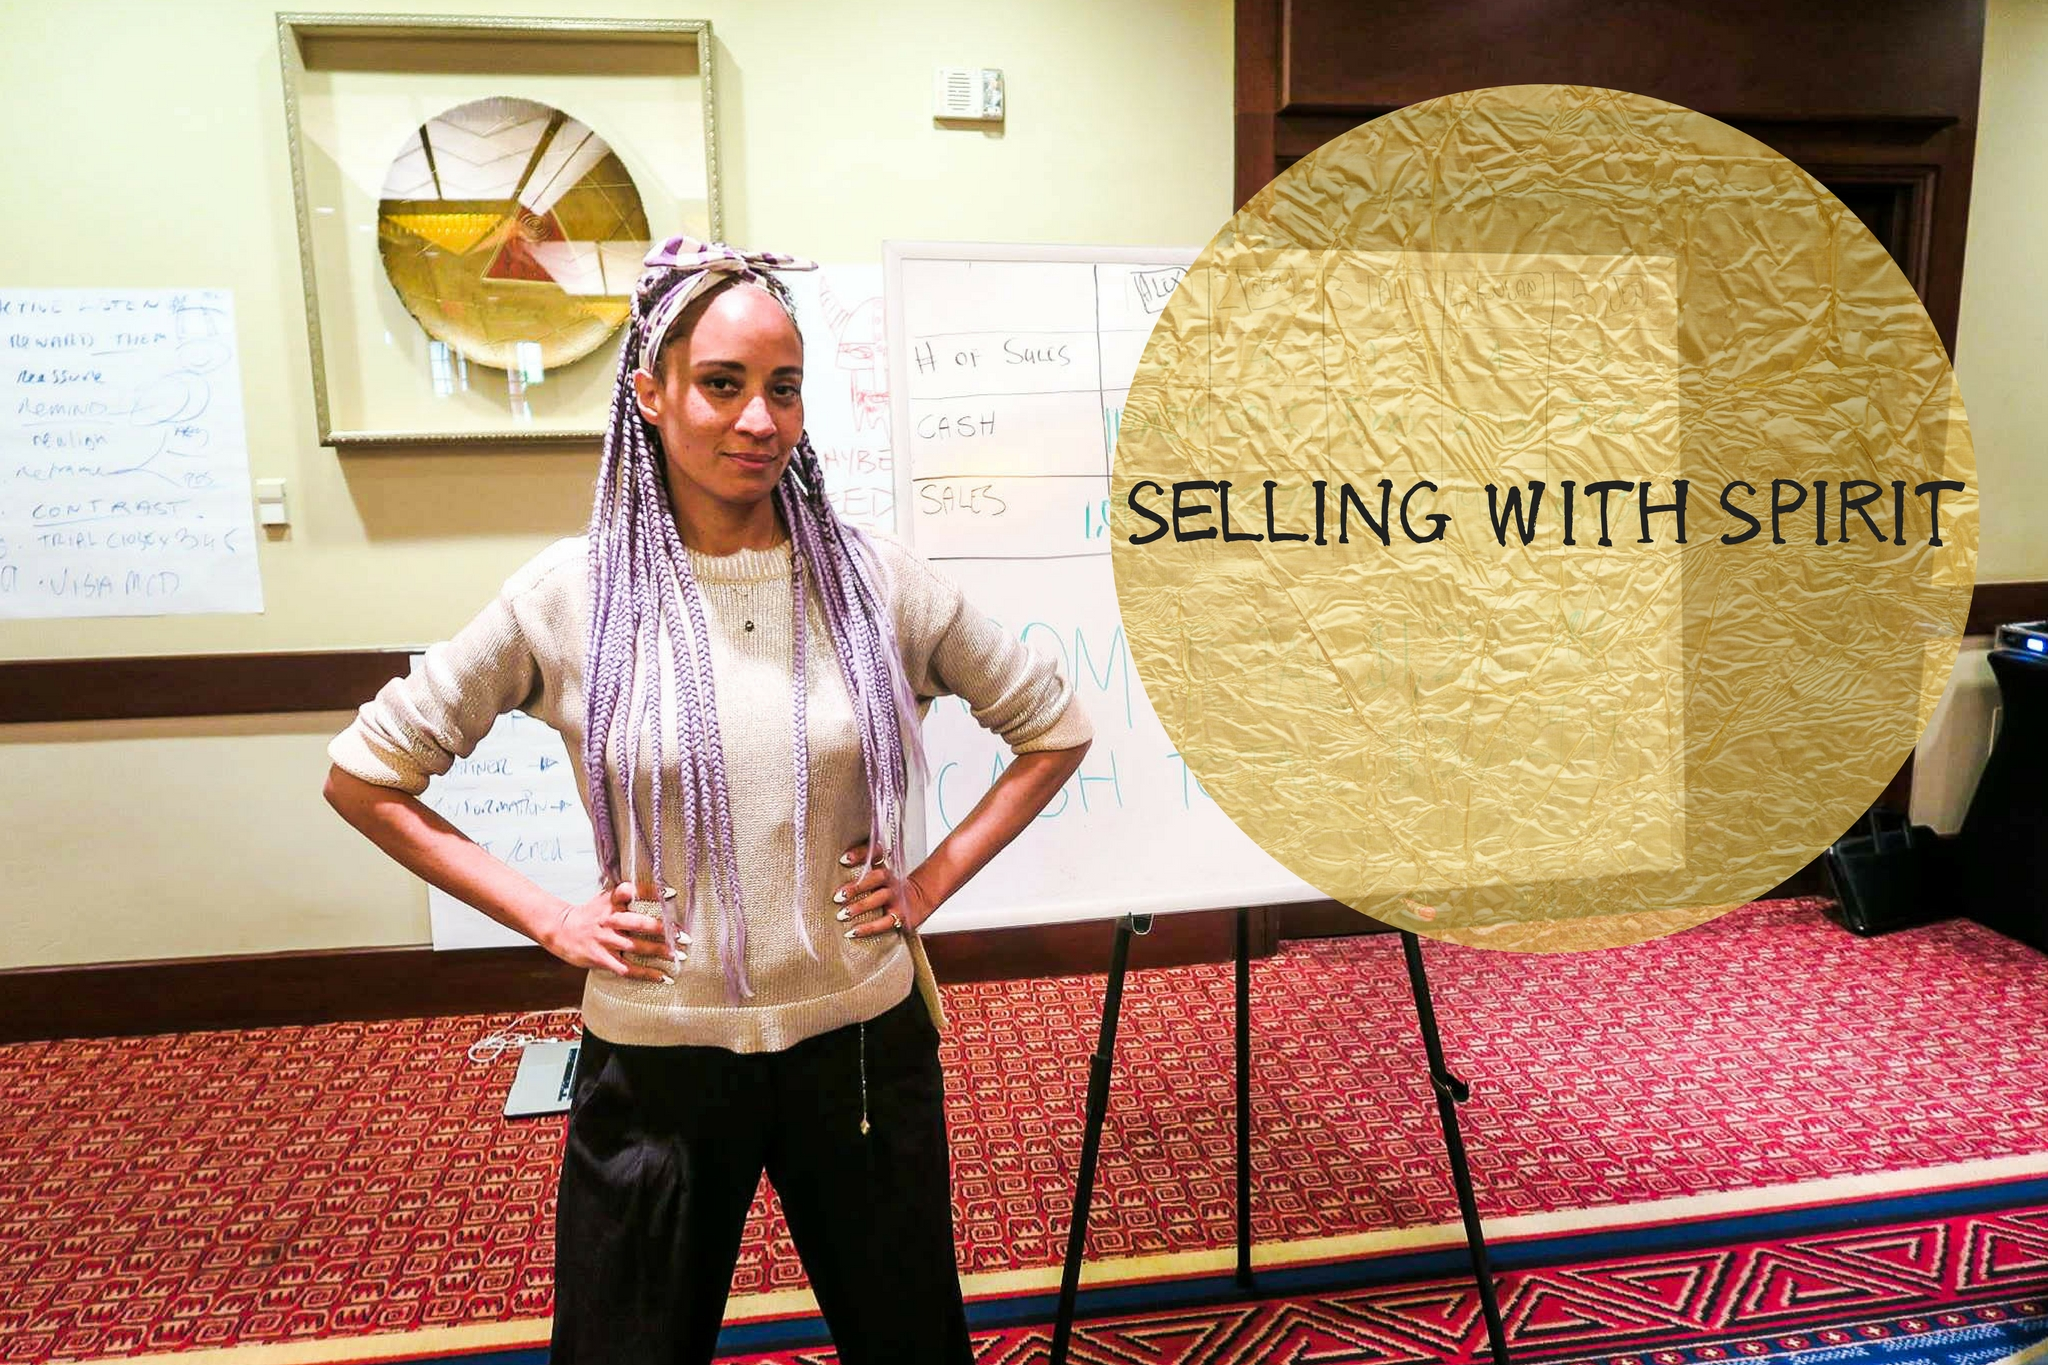 It's time for you to up level… - Selling with Spirit Mastercourse is a group program for Creatives who choose to make a difference in the world while being paid well for their Great Work.This 6 week program teaches spiritual entrepreneurs how to craft a high value offer, sell it with heart, and deliver it well. All while earning a handsome income, raising the quality of their lives - and of those around them.There is an aligned way to craft products and services - and market and sell them - according to your individual energy.Selling with Spirit merges metaphysics and commerce - using several modalities to decide what is best for you in the marketplace. The course helps you discover your unique voice and do what you love while honoring your self respect.